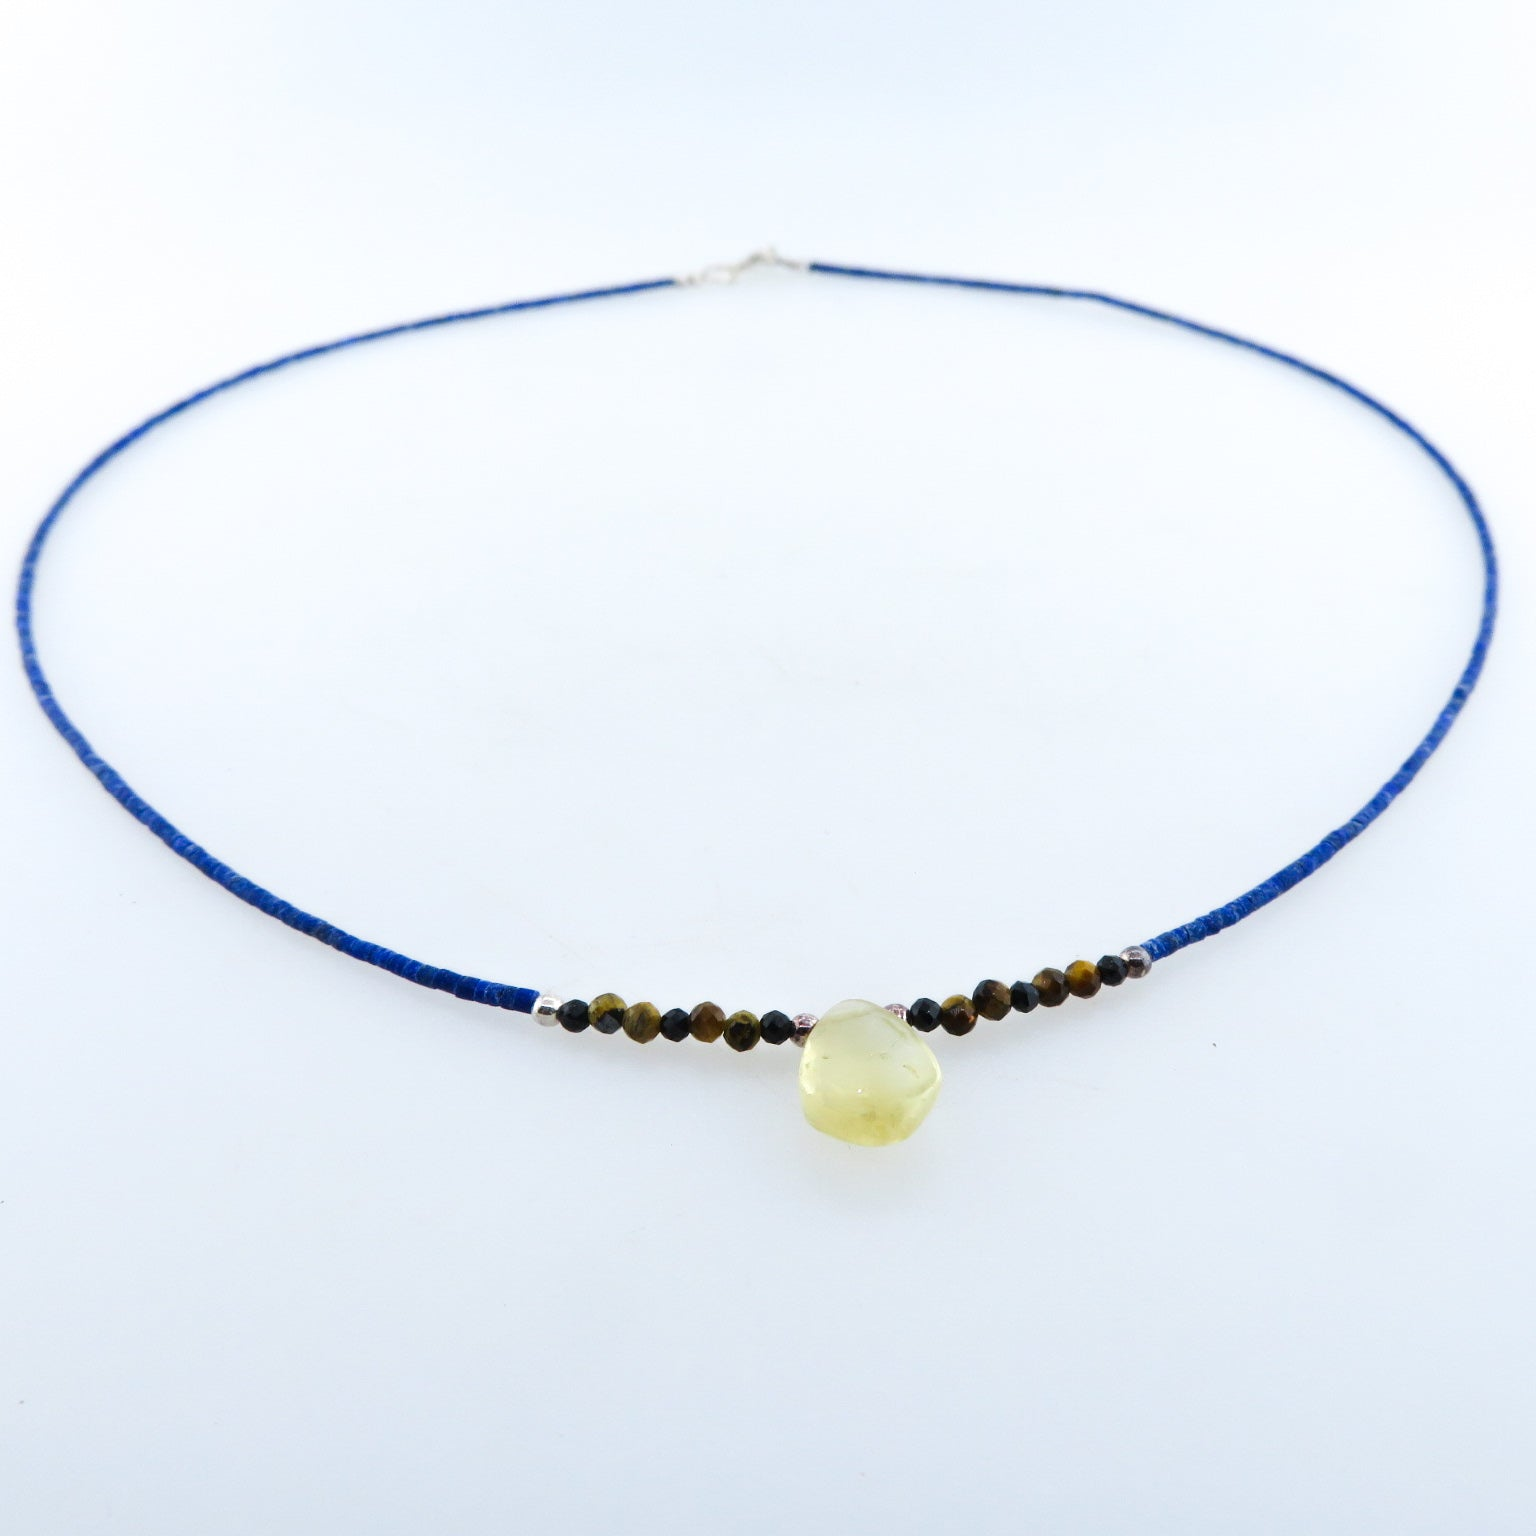 Lapis Lazuli Necklace with Citrine, Tiger's Eye, Black Onyx and Silver Brads